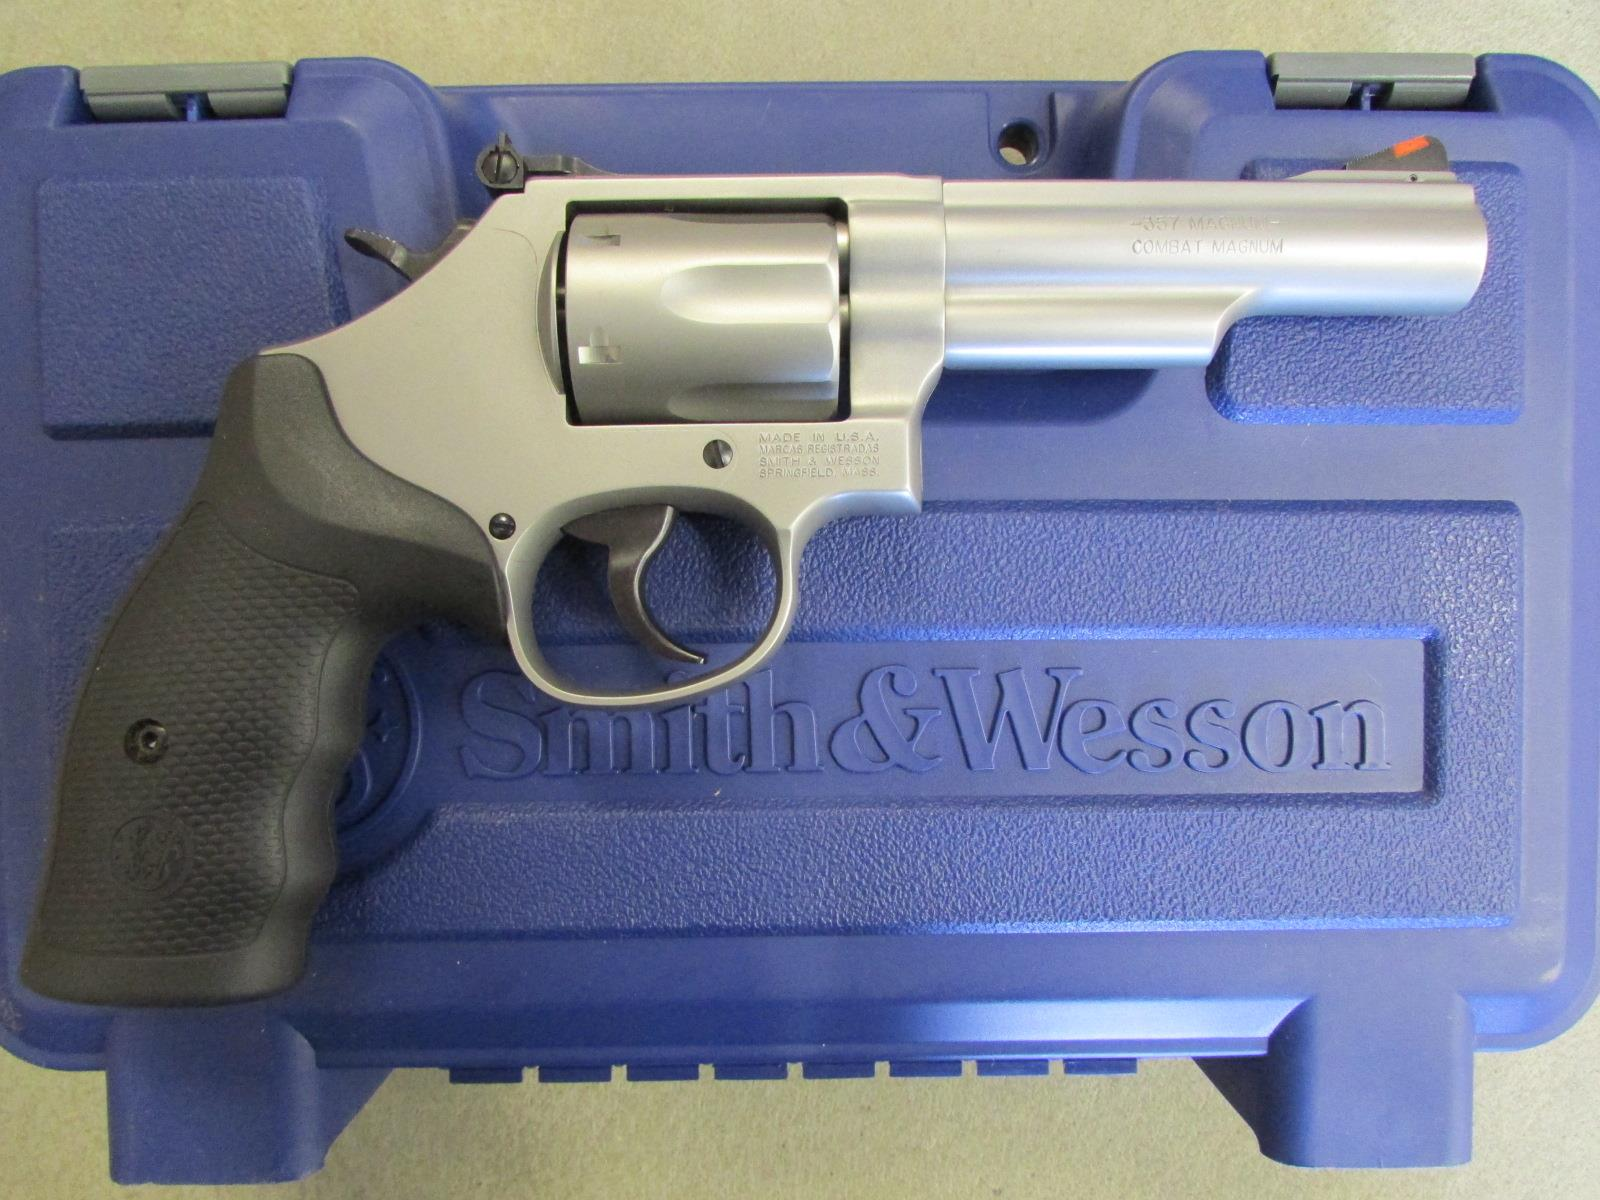 "Smith & Wesson Model 66 4.25"" Stainless .357 Mag 162662  Guns > Pistols > Smith & Wesson Revolvers > Full Frame Revolver"